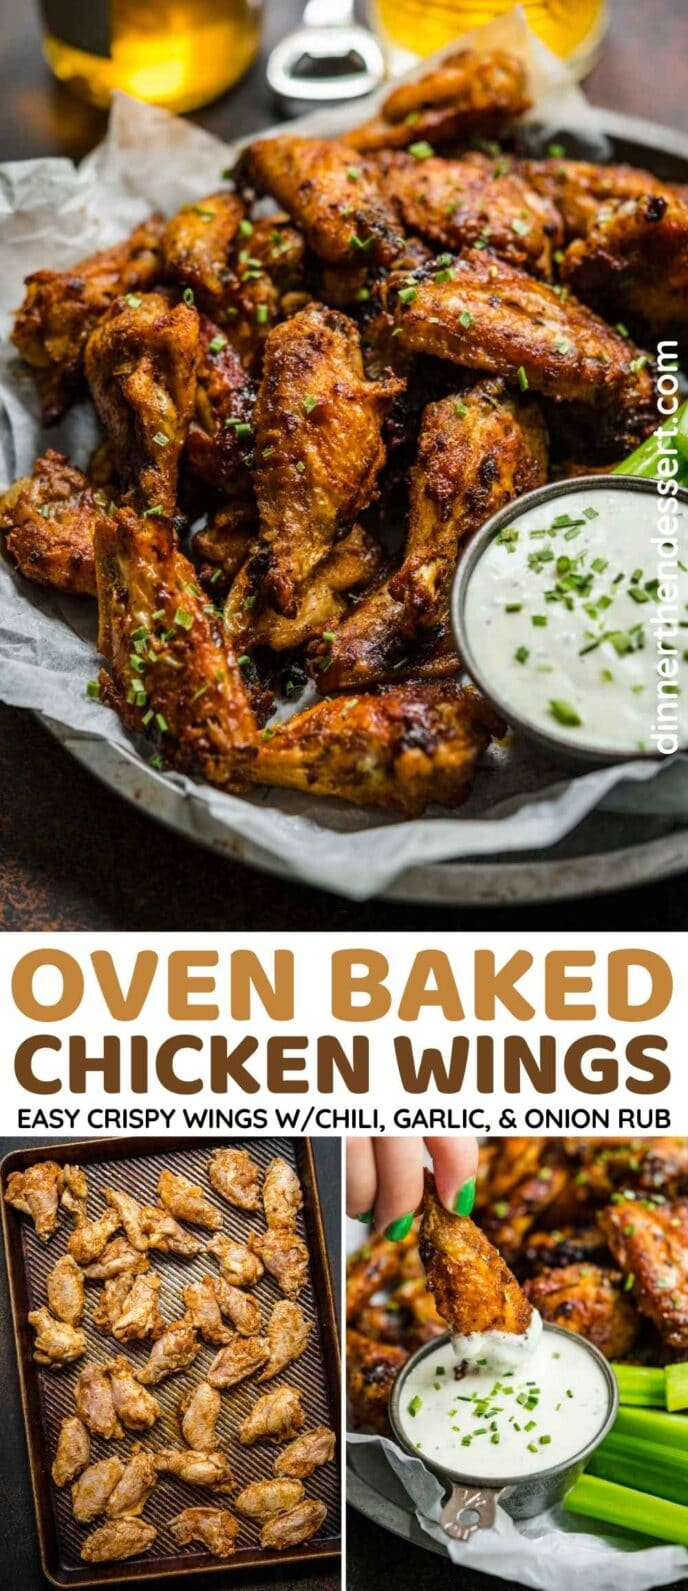 Baked Chicken Wings Collage